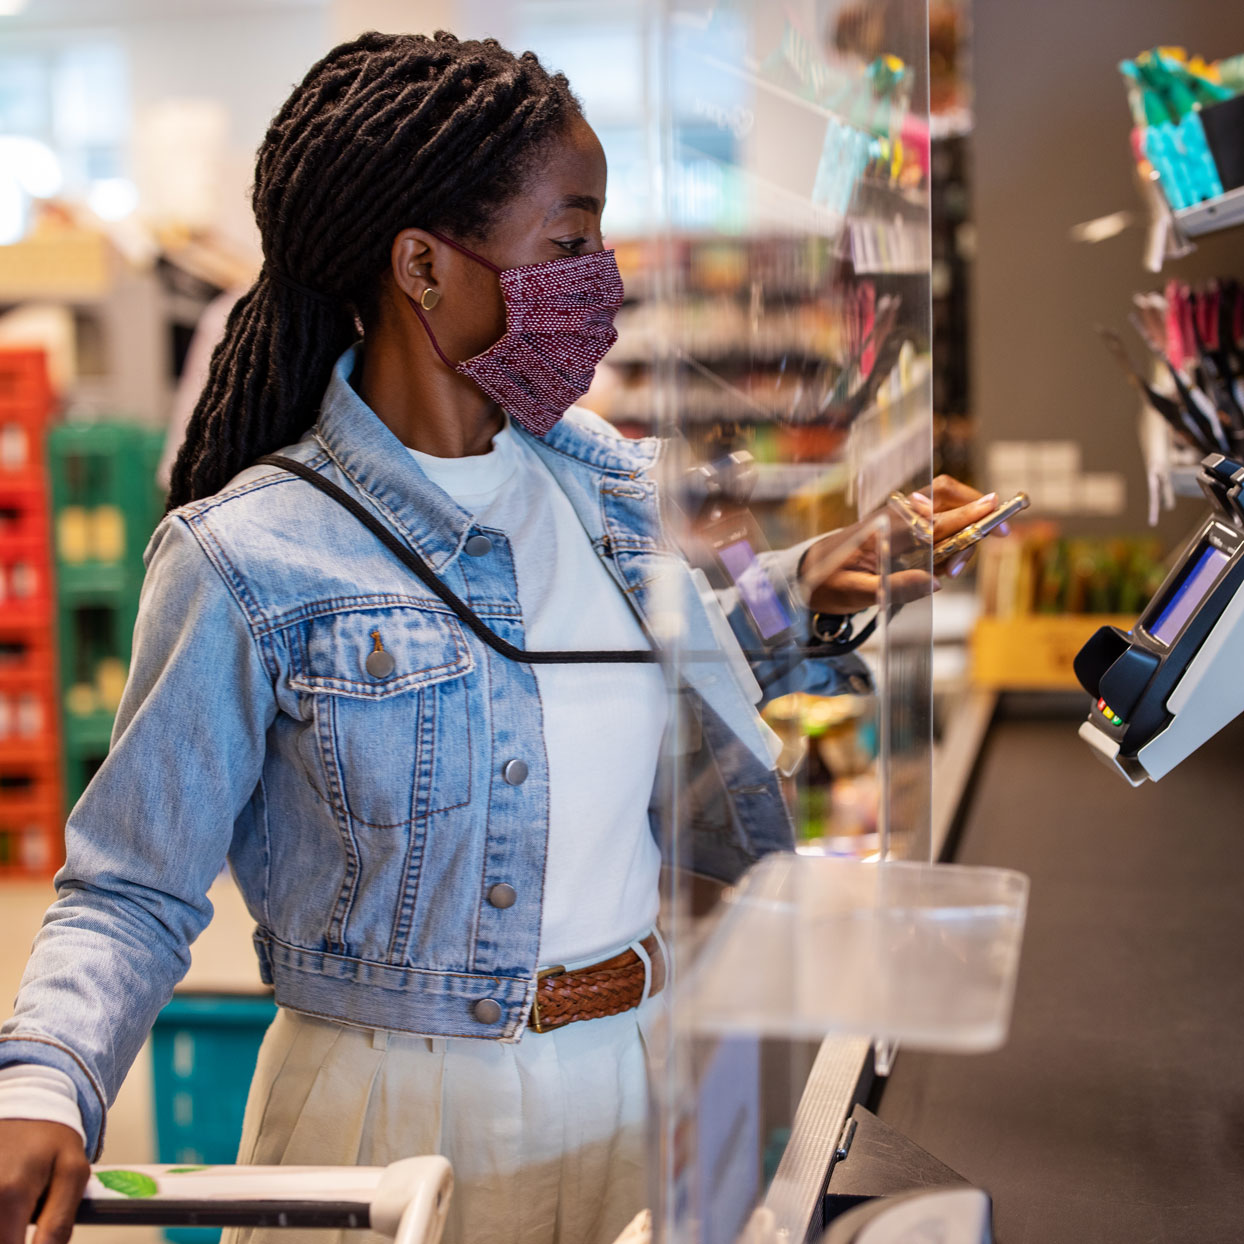 4 Ways to Save Money on Groceries in 5 Minutes